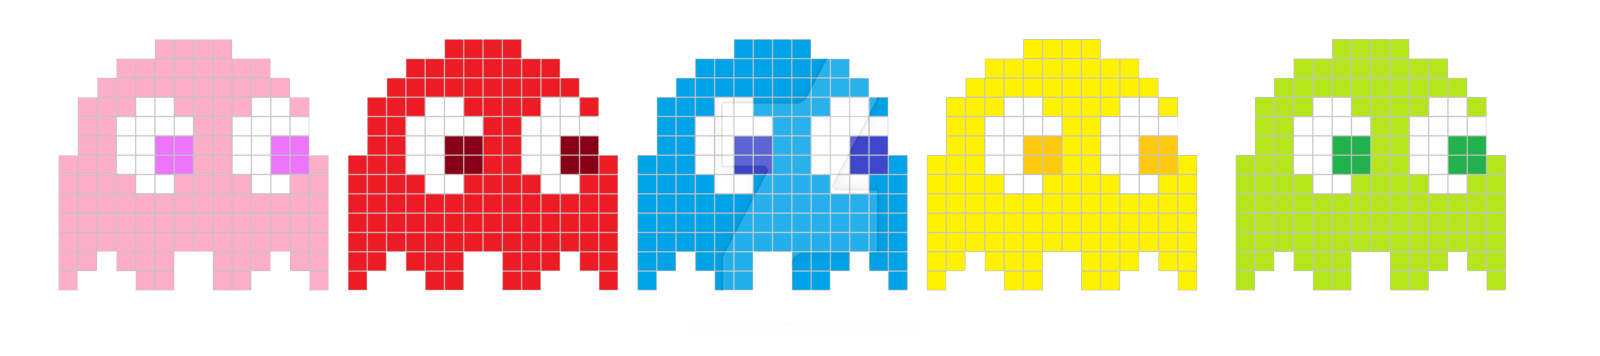 Download PNG image - Pac-Man Ghost Photos 562 - Pac PNG